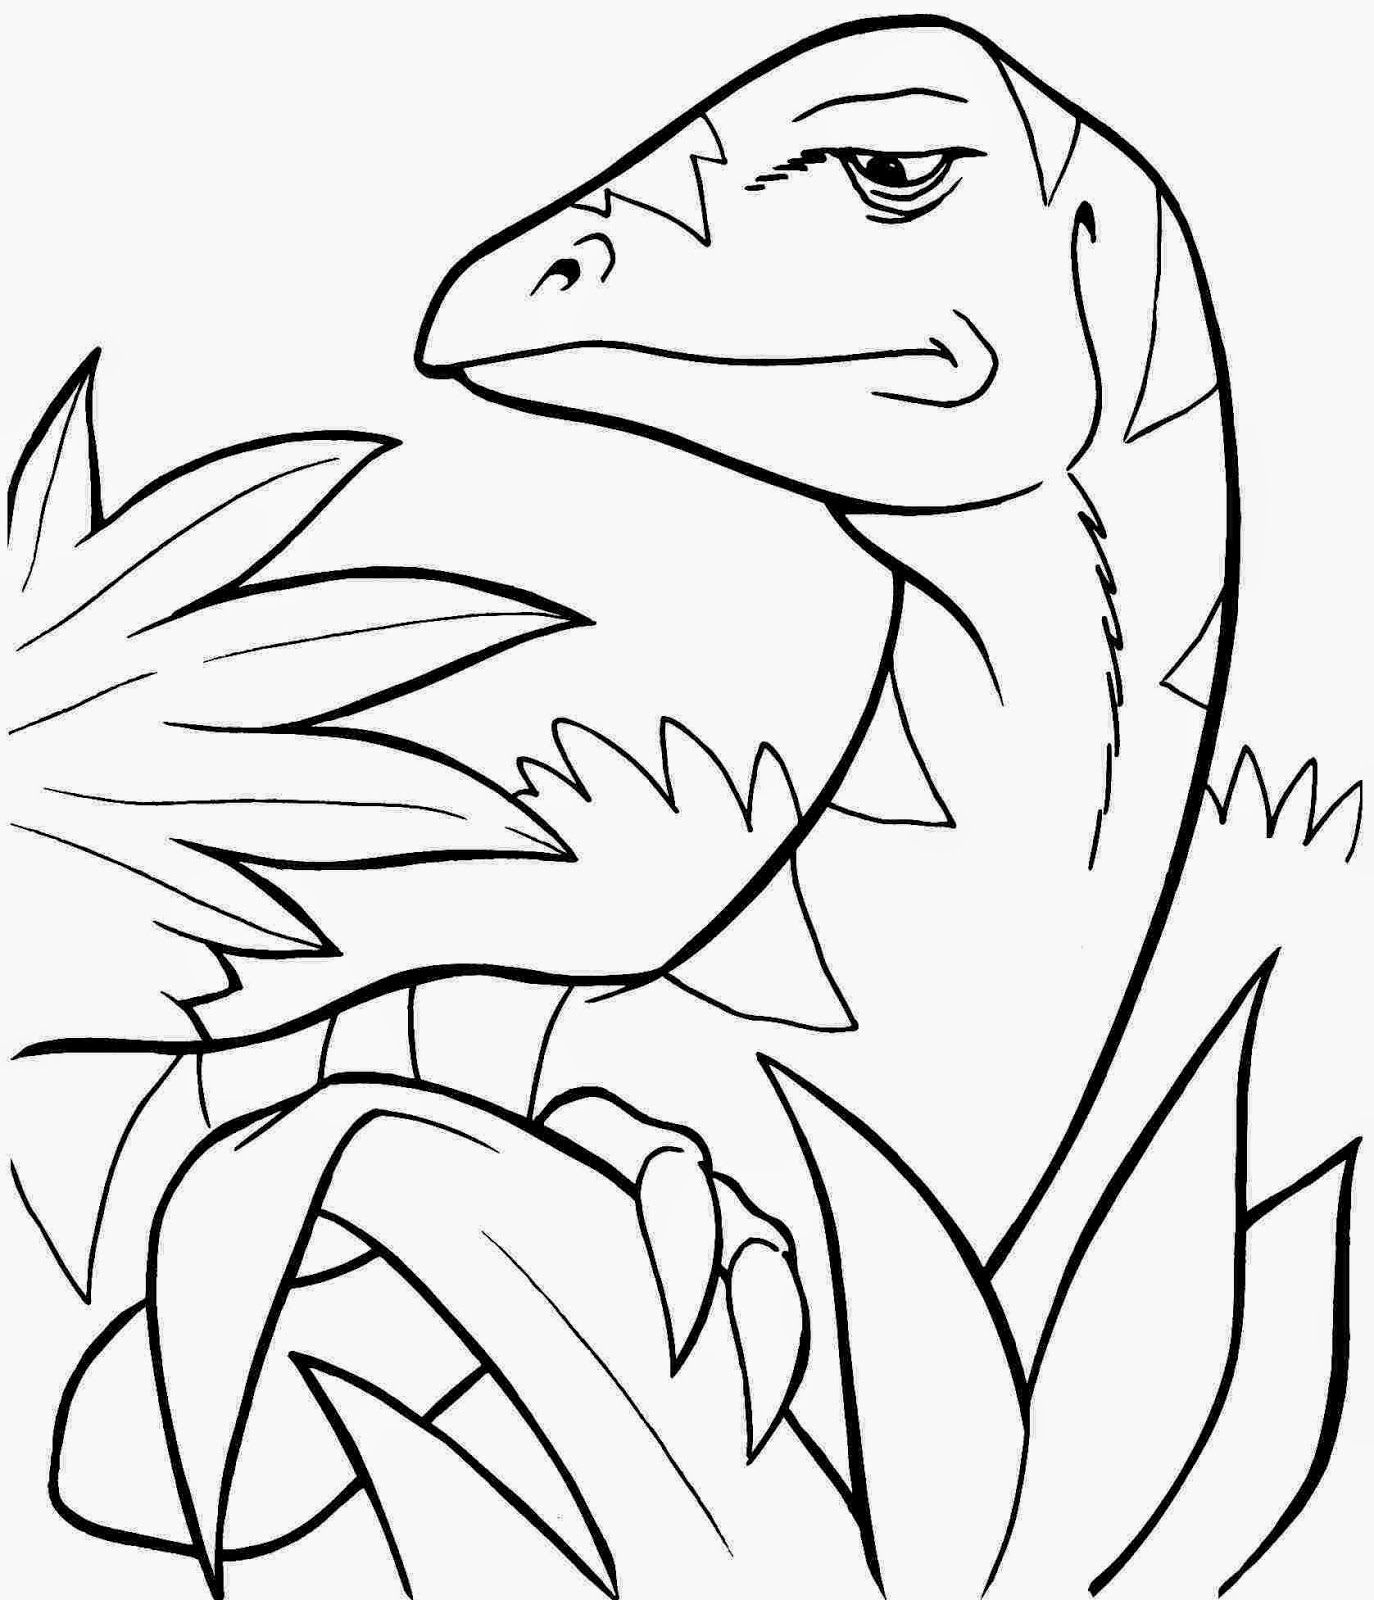 free printable dinosaur coloring pages dinosaur coloring pages to download and print for free coloring free dinosaur pages printable